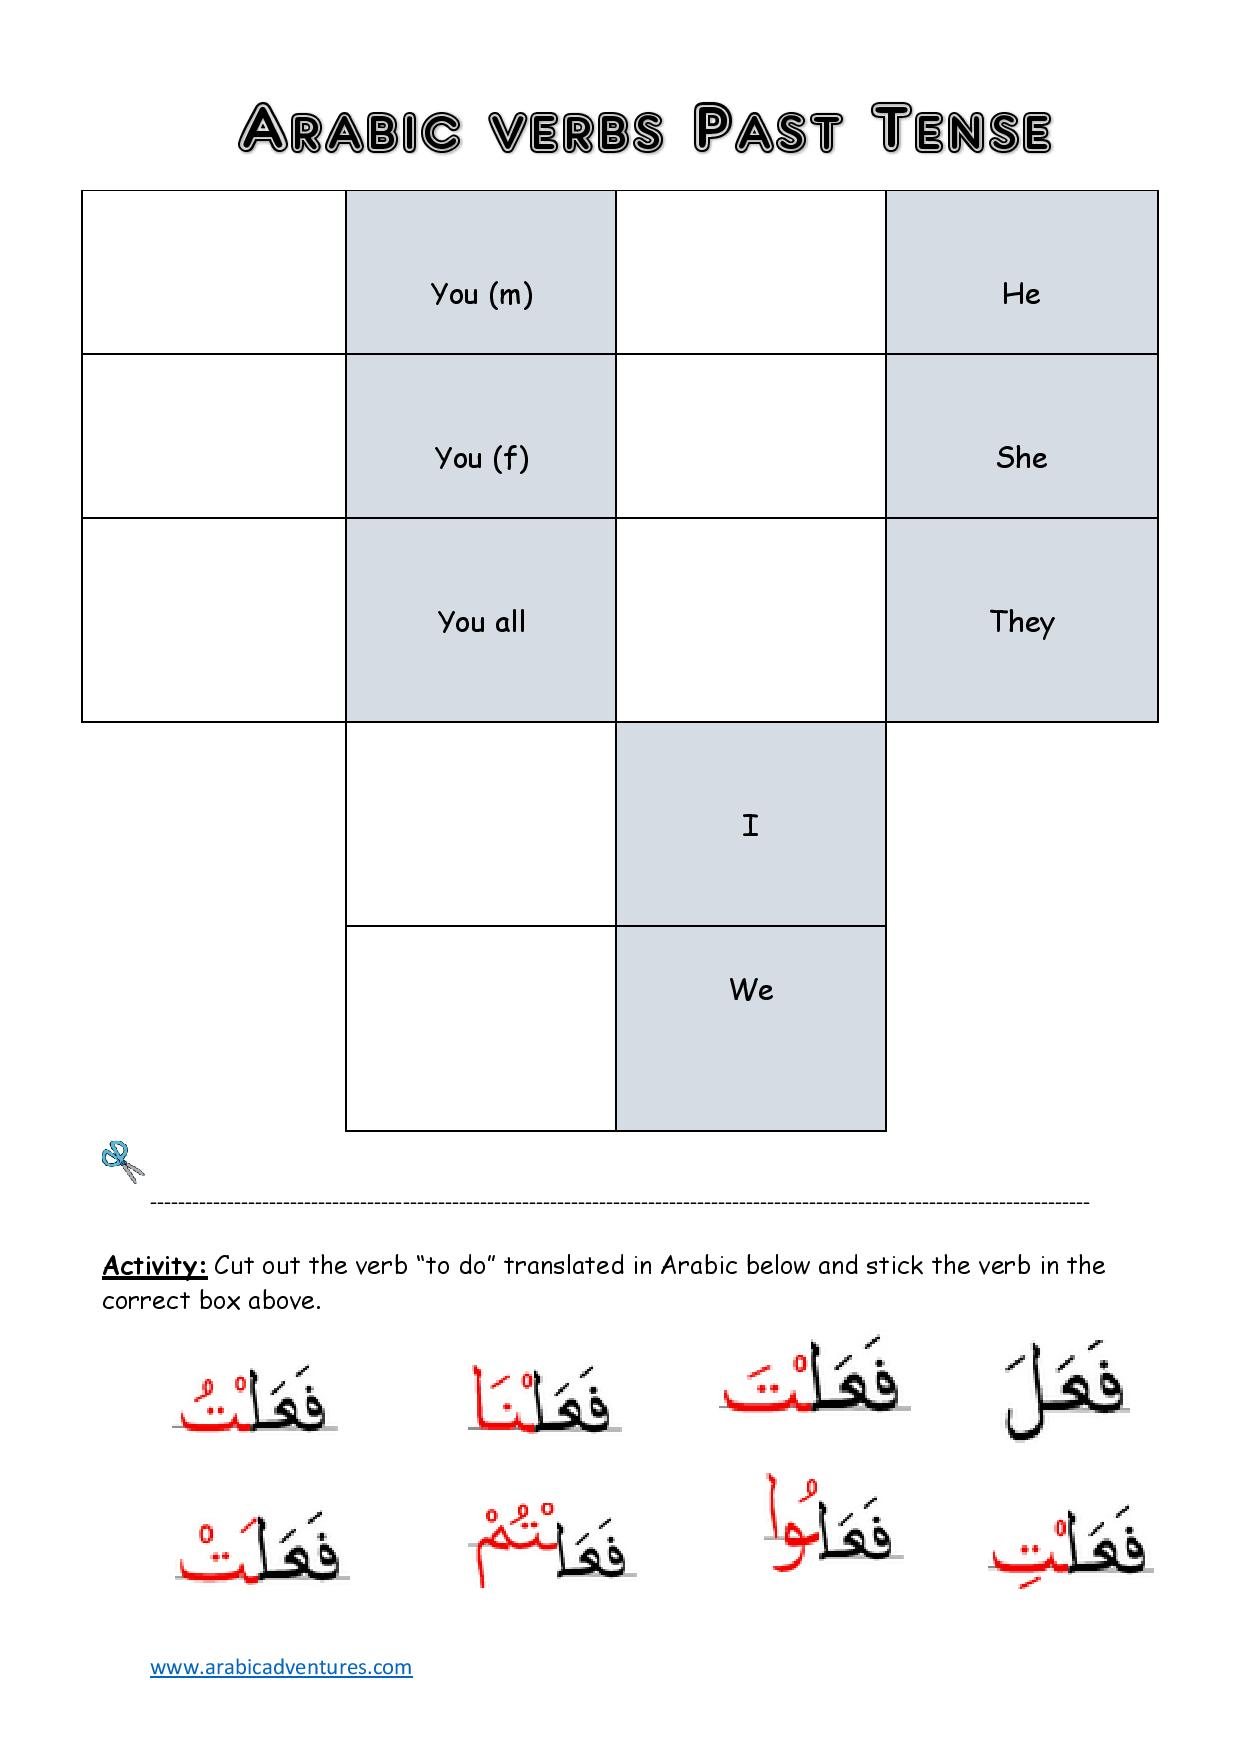 arabic-past-tense-box-page-001 Verb Tense Cut And Paste Worksheet on cut and paste vocabulary, cut and paste number, cut and paste synonyms, cut and paste antonyms, cut and paste homophones, cut and paste adverbs, cut and paste possessive nouns, cut and paste author's purpose, cut and paste syllables, cut and paste character, cut and paste editing, cut and paste capitalization,